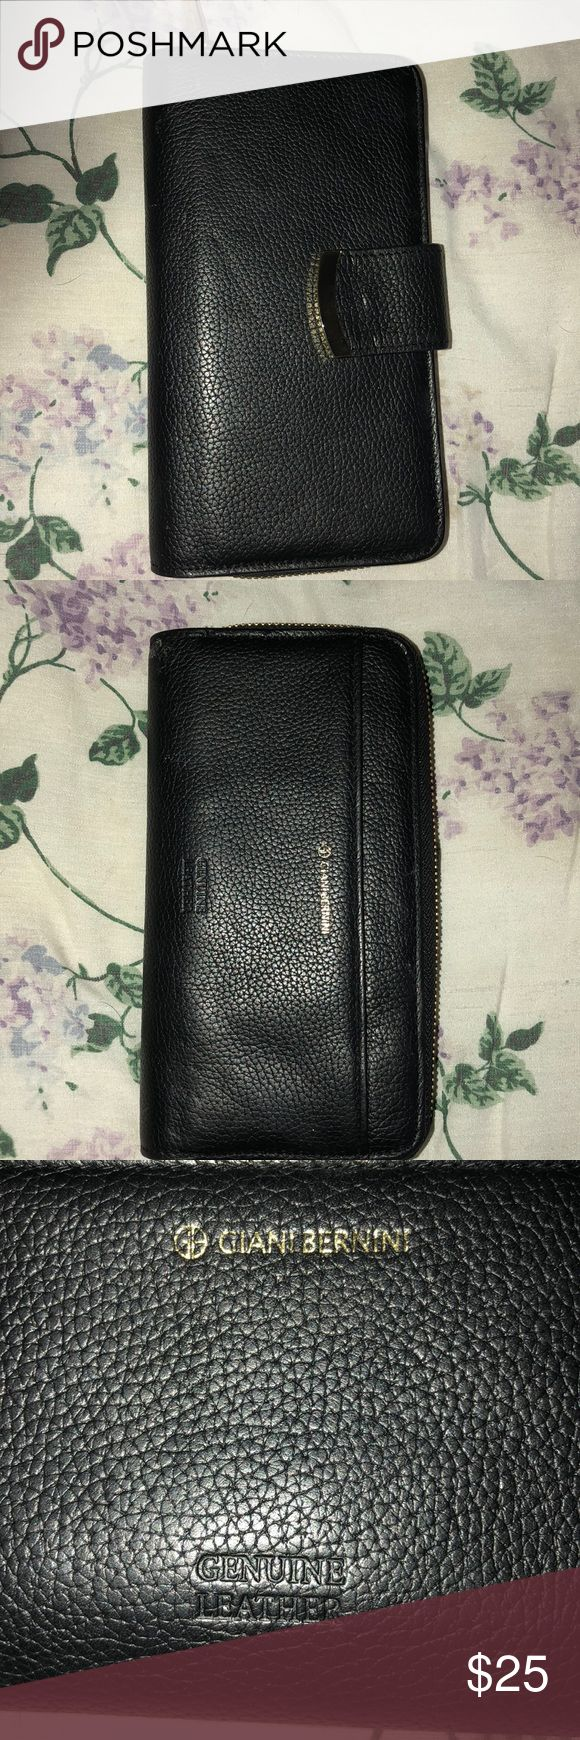 """GIANI BERNINI NWOT 100% Black pebble wallet GIANI BERNINI Black pebble wallet with gold zipper and a pouch in front a zipper with another zipper pouch inside and plenty of room for cards and ID with a pen holder and a slot for checks  Never used! 8"""" x 41/2"""" Giani Bernini Bags Wallets"""